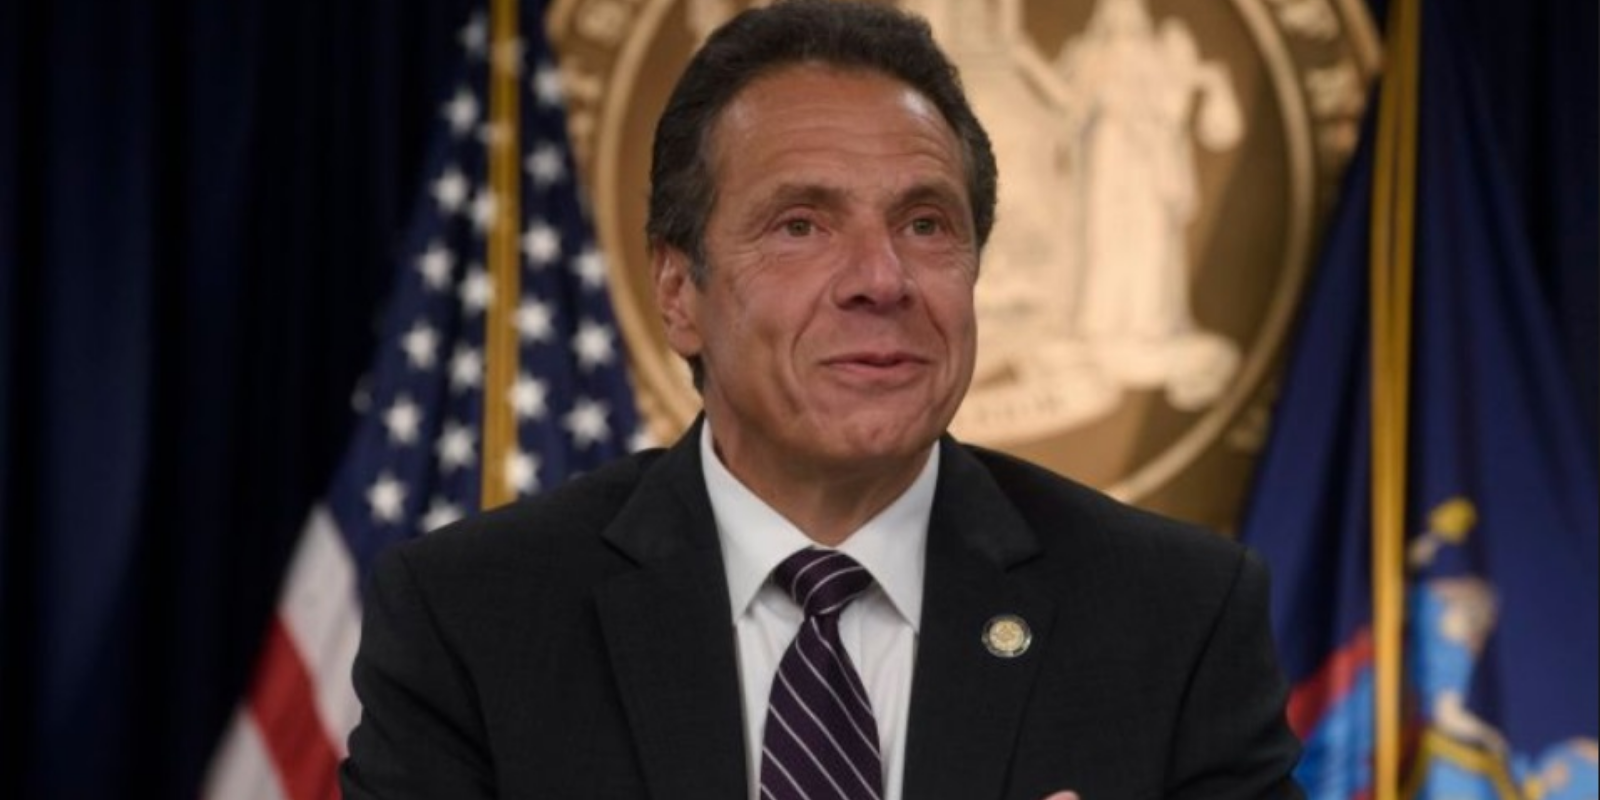 WATCH: Governor Cuomo has a MELTDOWN when asked by reporter about NY school closures